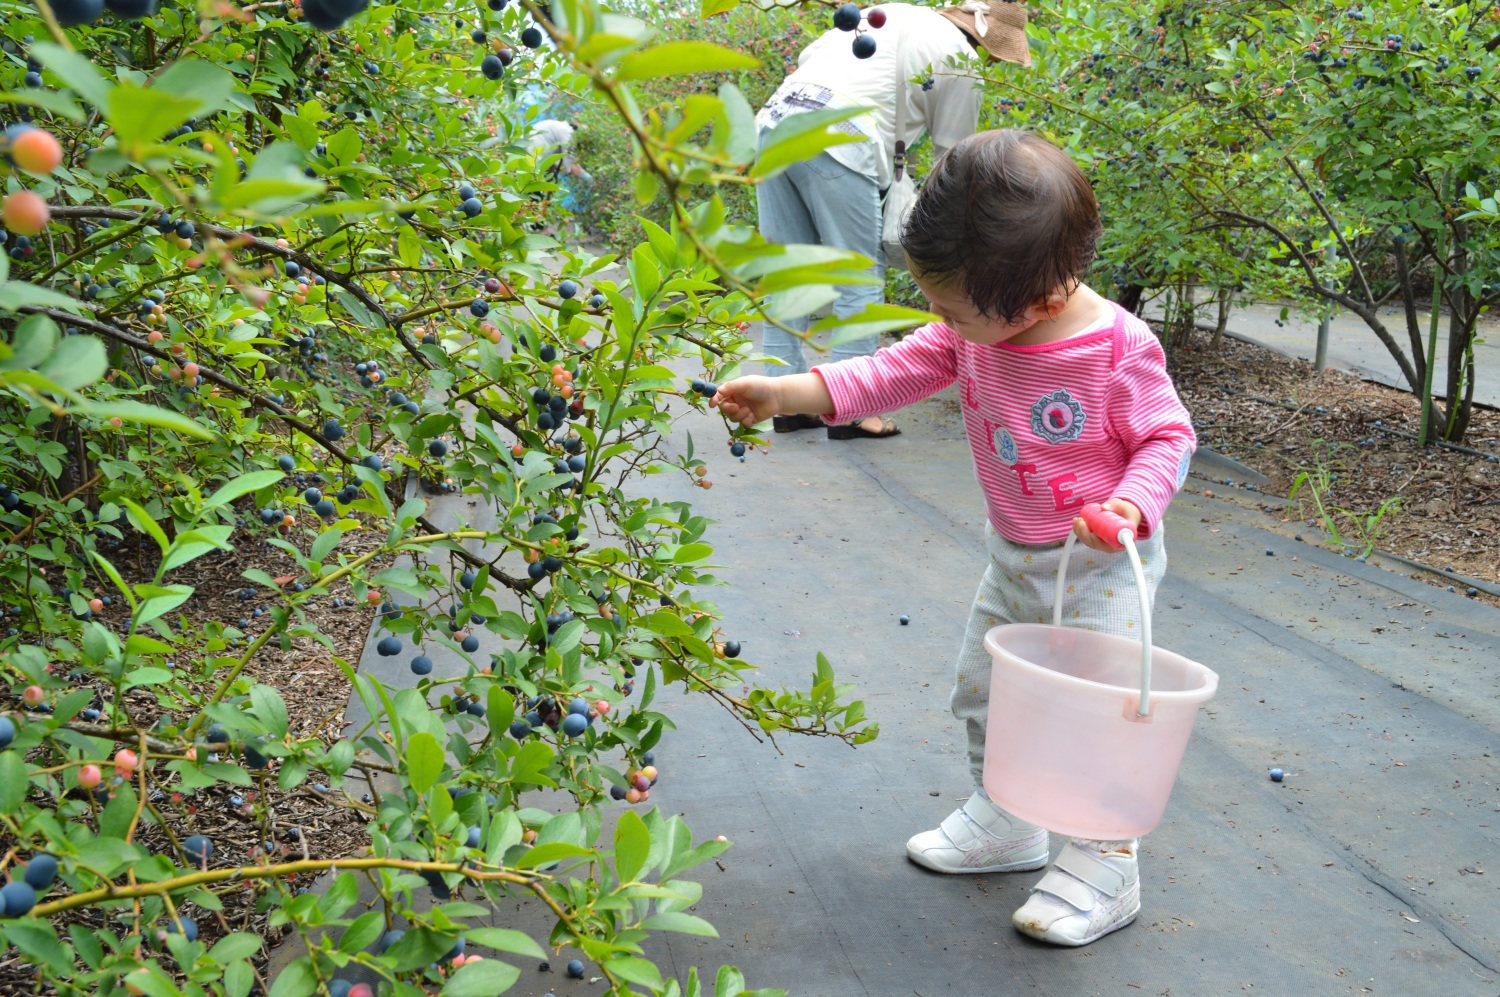 Among adults, it is earnest? Knob collecting of blueberry